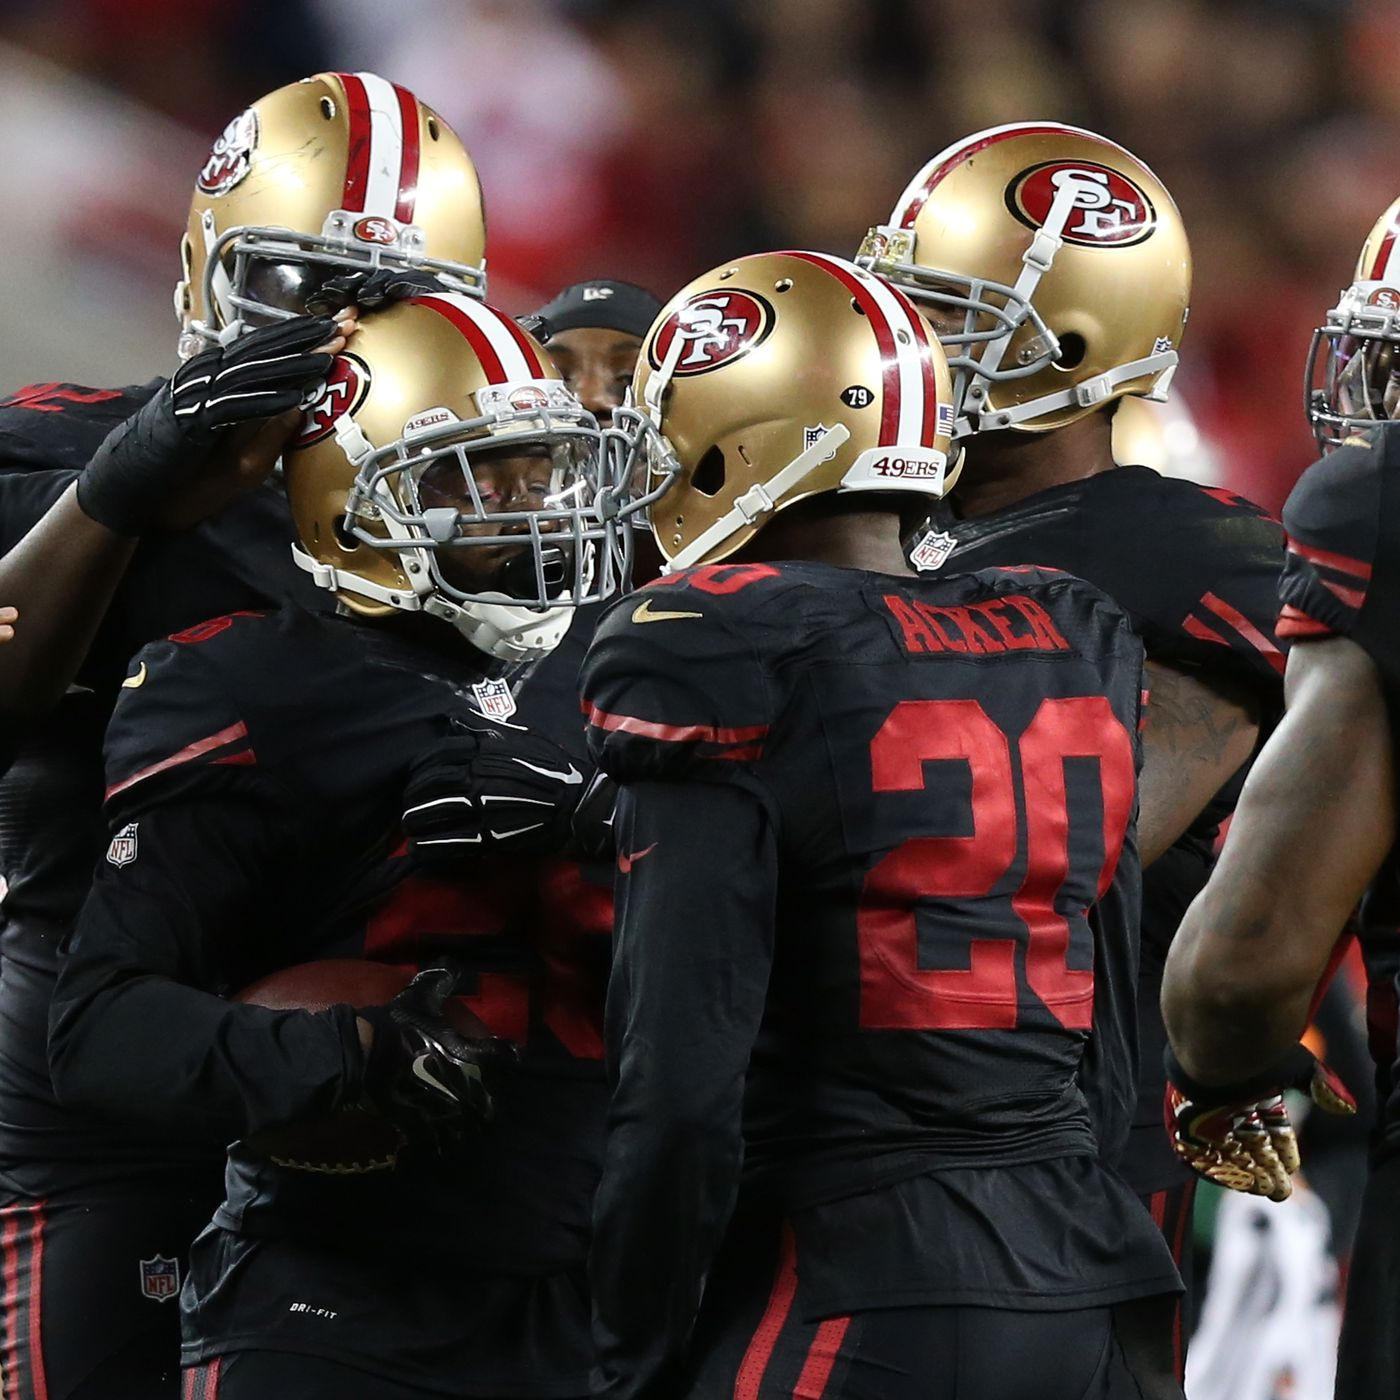 966a5b5976f Happy third anniversary to the 49ers black alternate uniforms - Niners  Nation